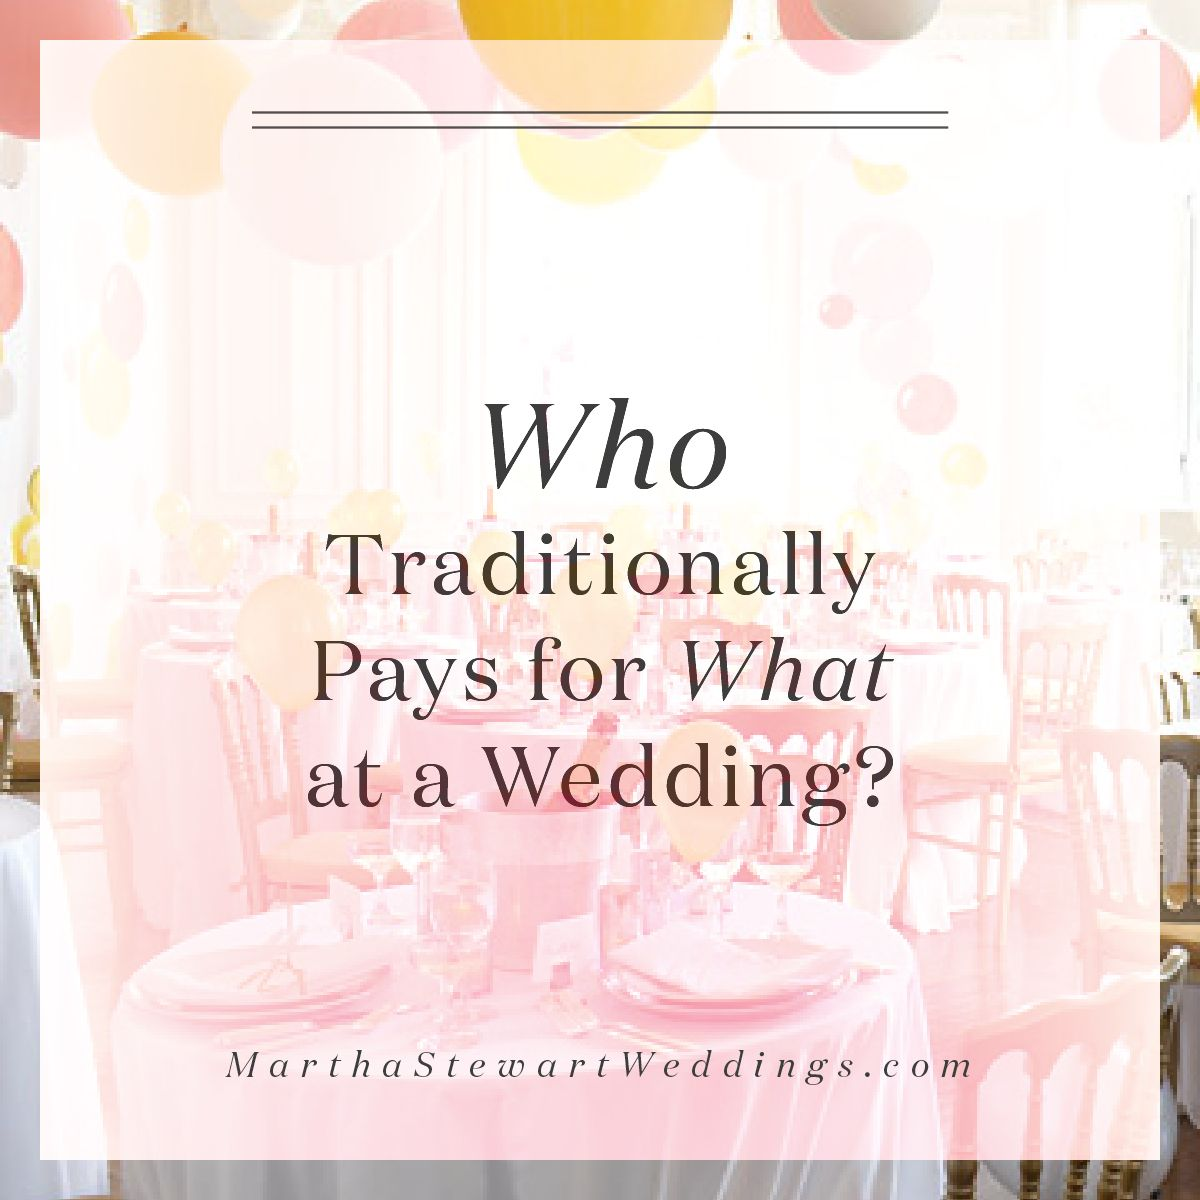 Wedding Venues Near Me Cheap: Find Out Who Pays For What At A Wedding